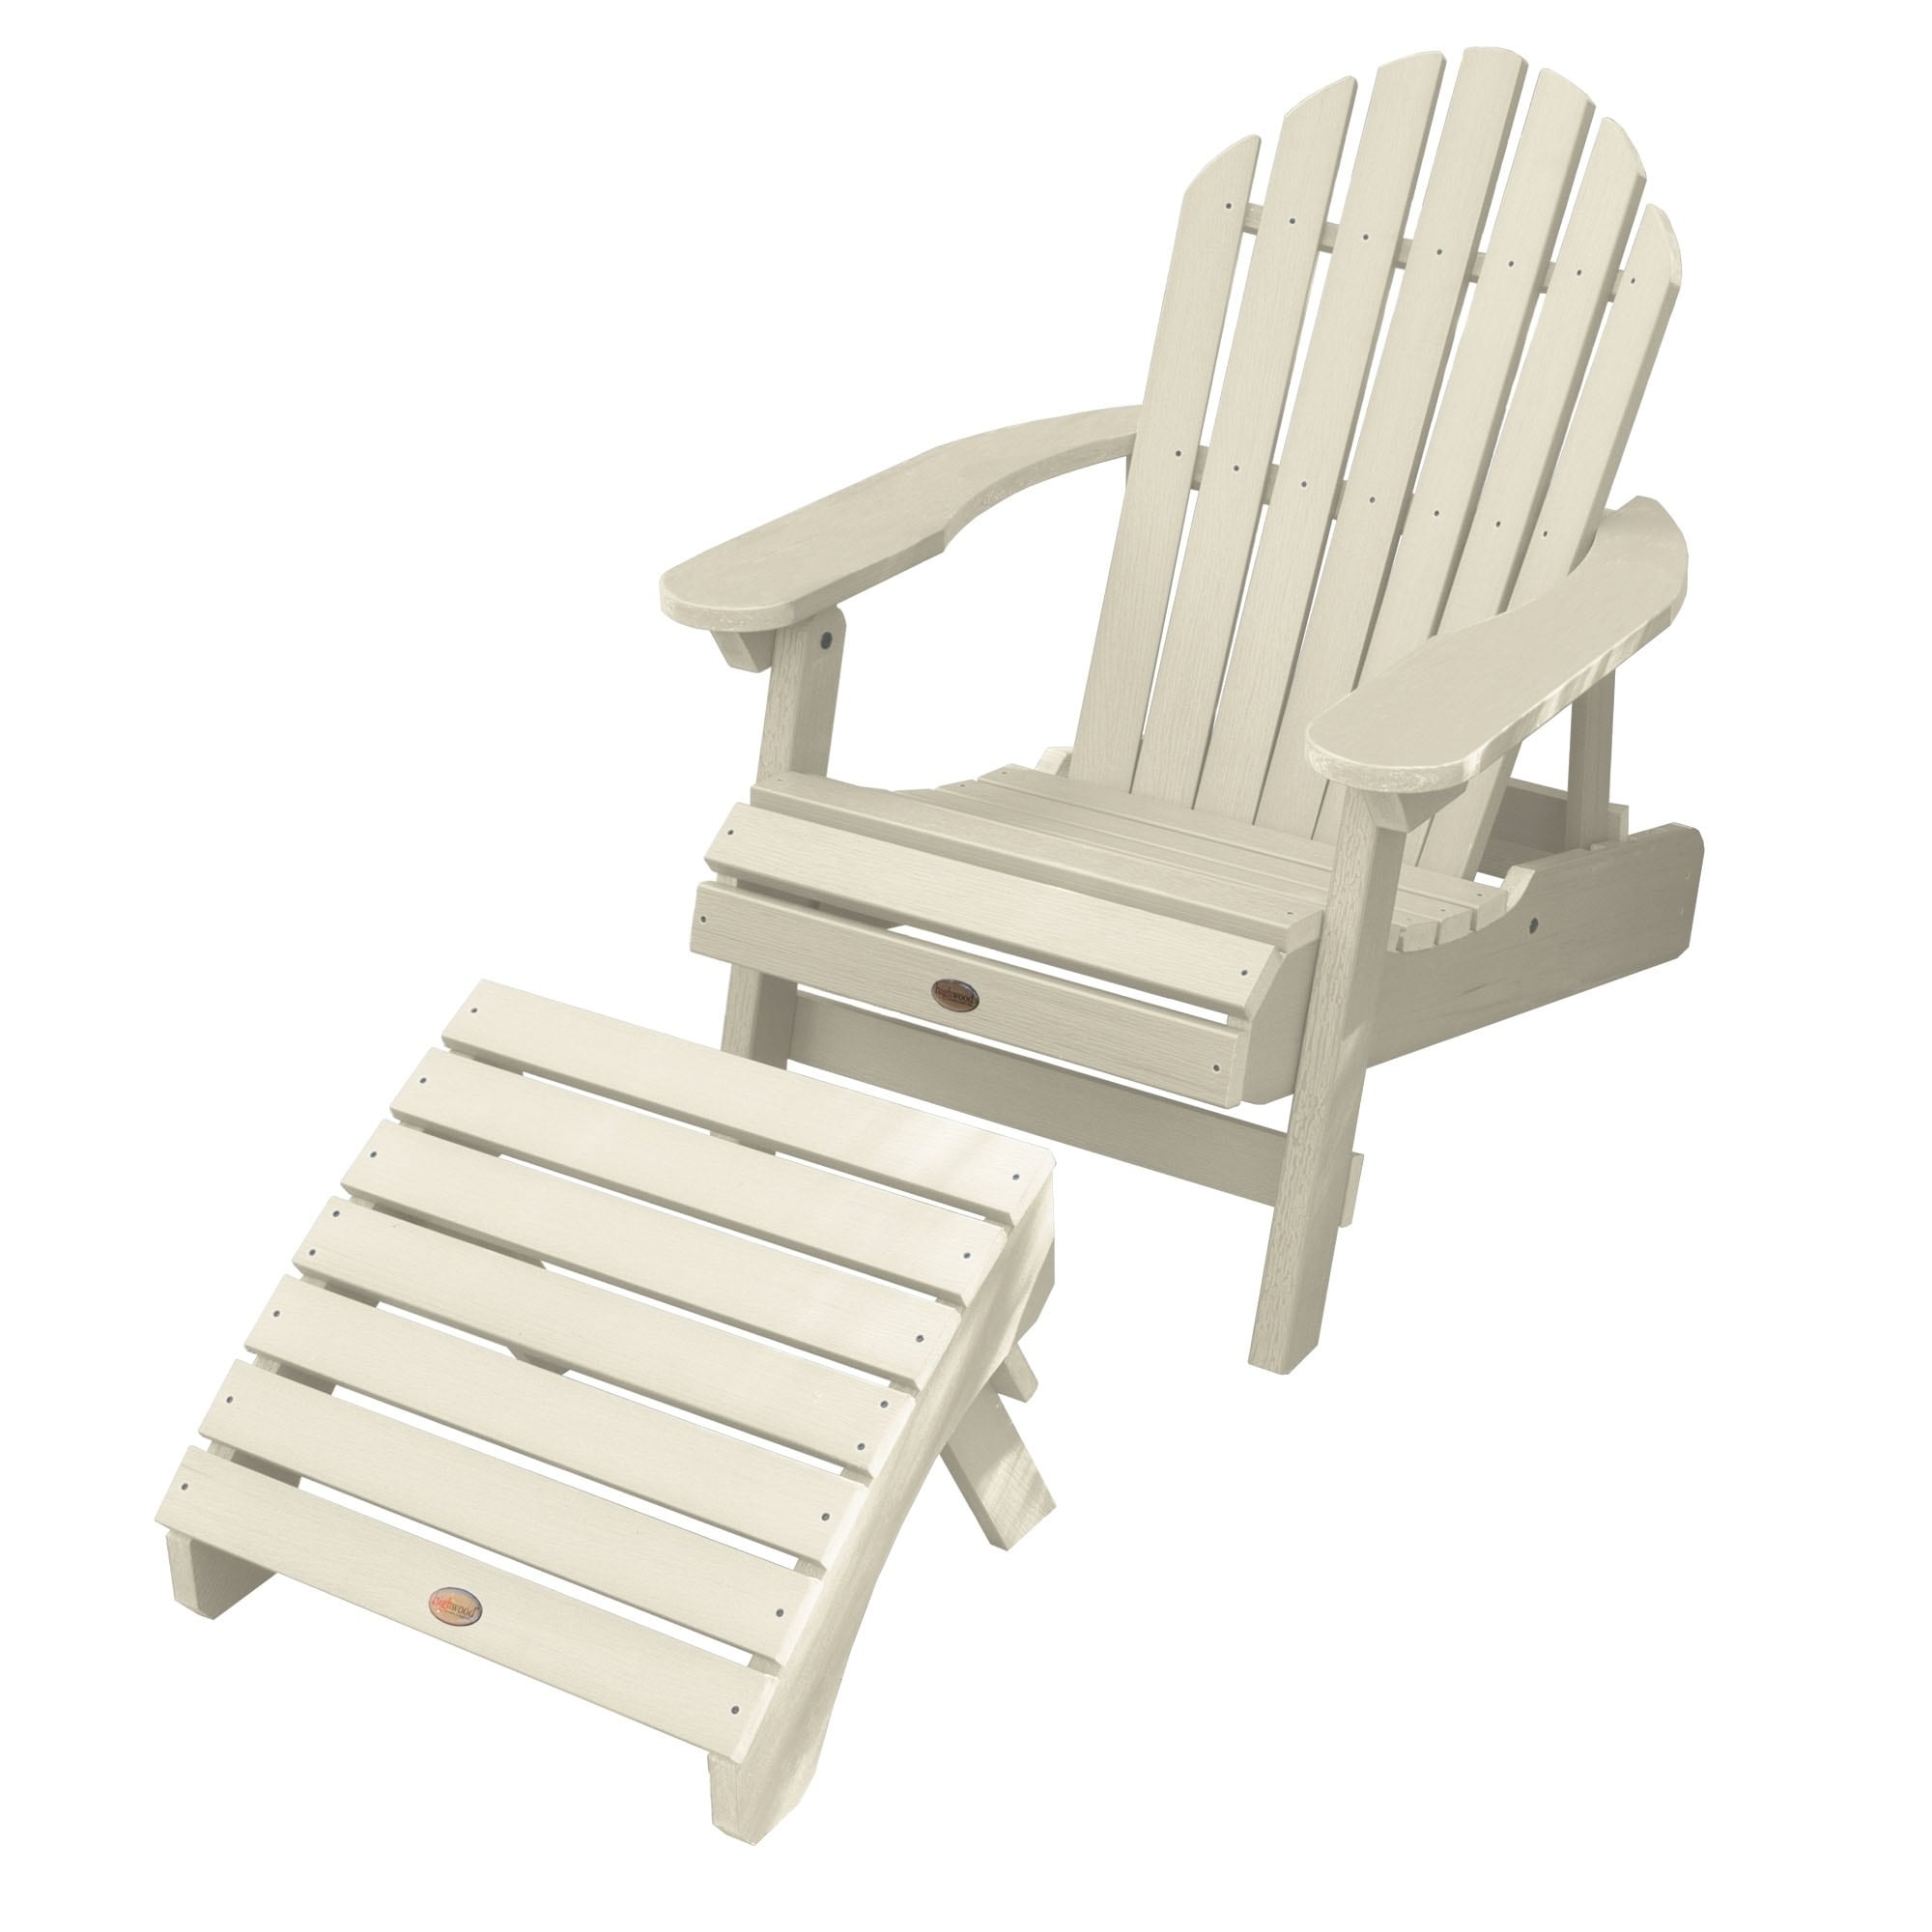 Oliver U0026 James Jacques Outdoor Chair And Folding Ottoman Set